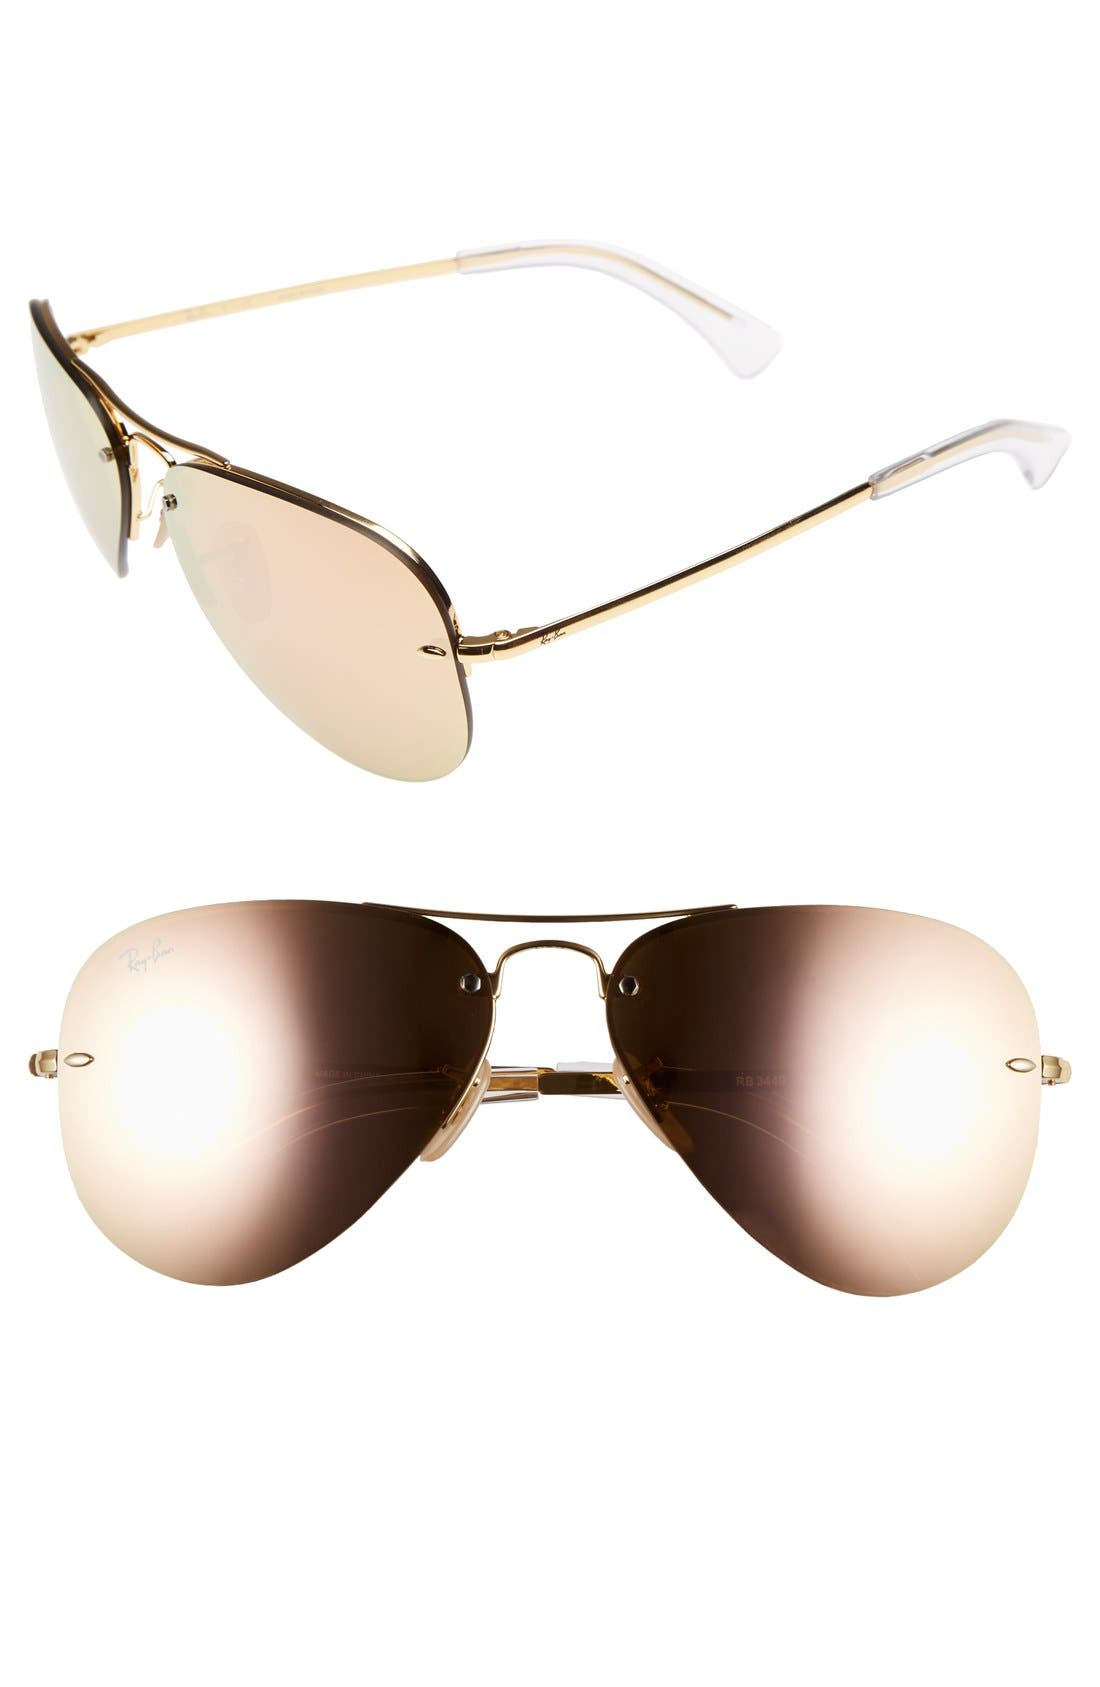 Ray-Ban Highstreet 59mm Semi Rimless Aviator Sunglasses